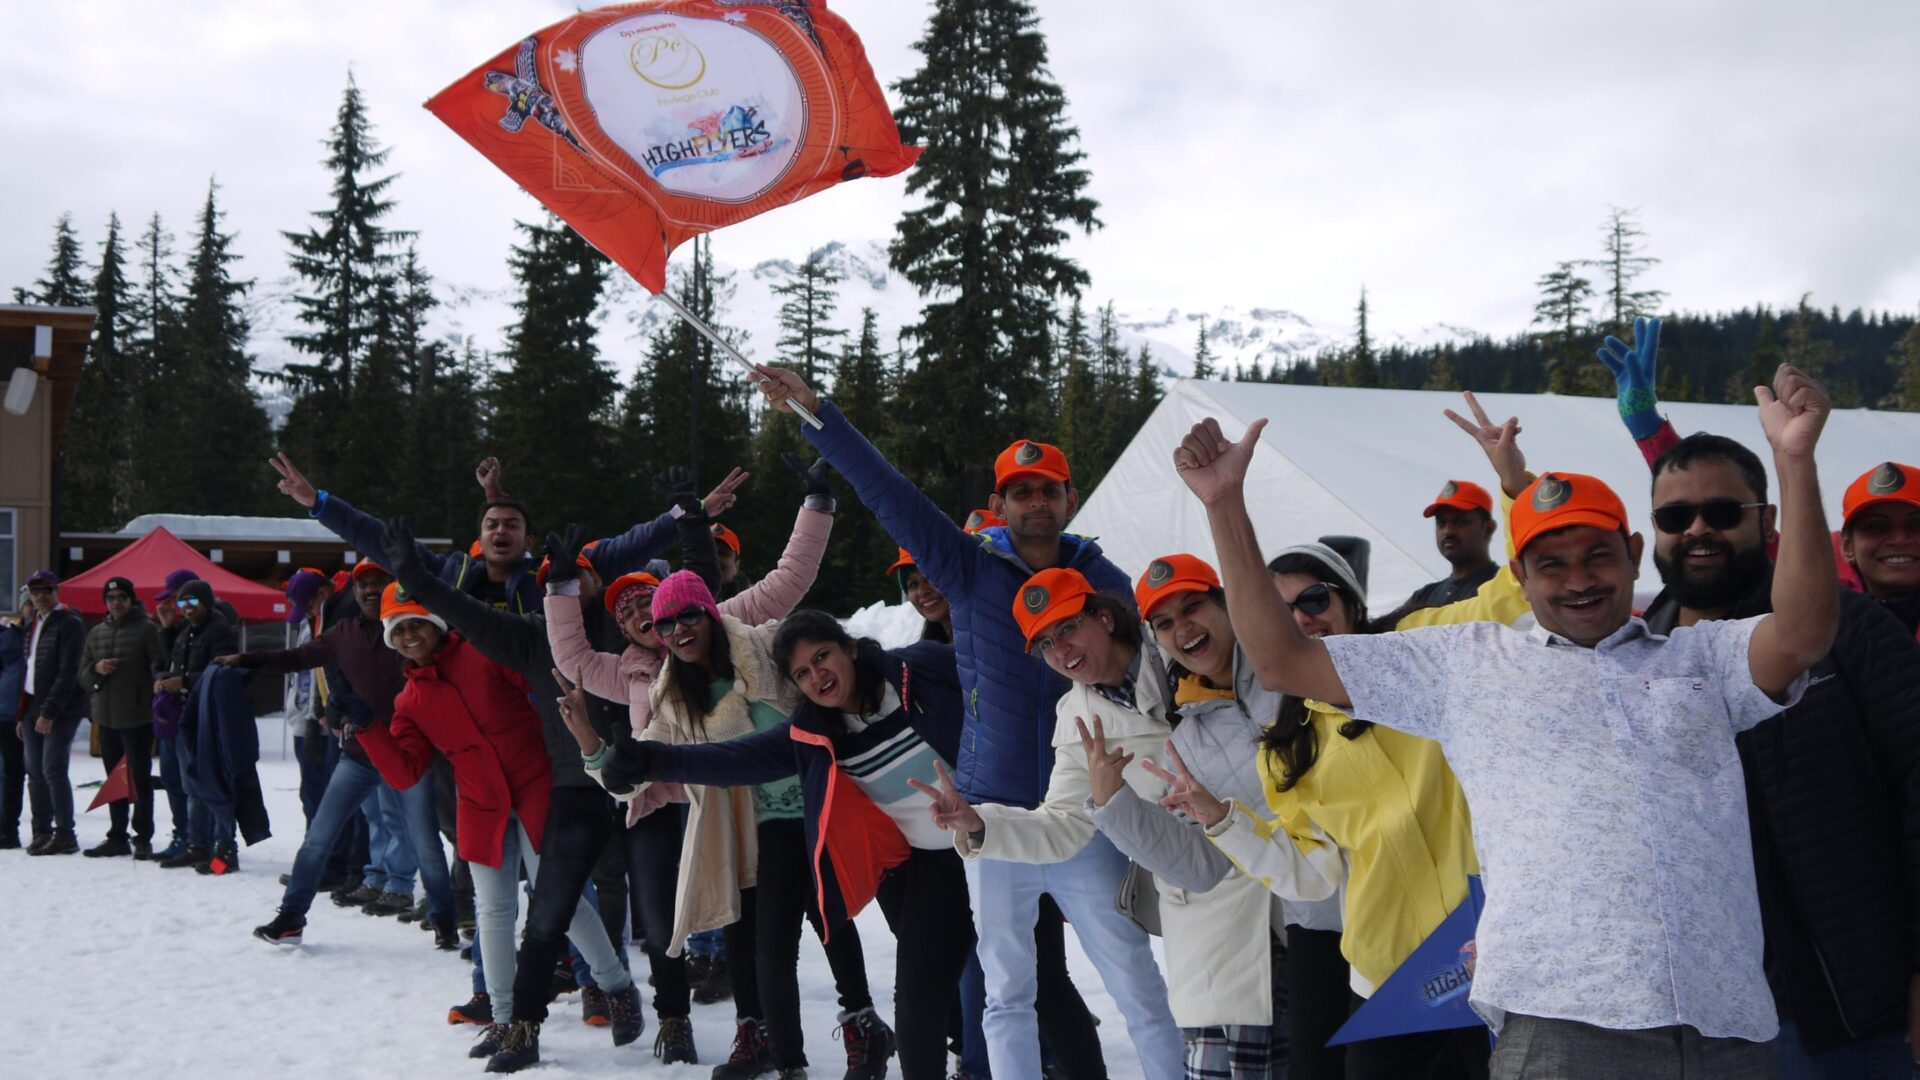 whistler incentive trip